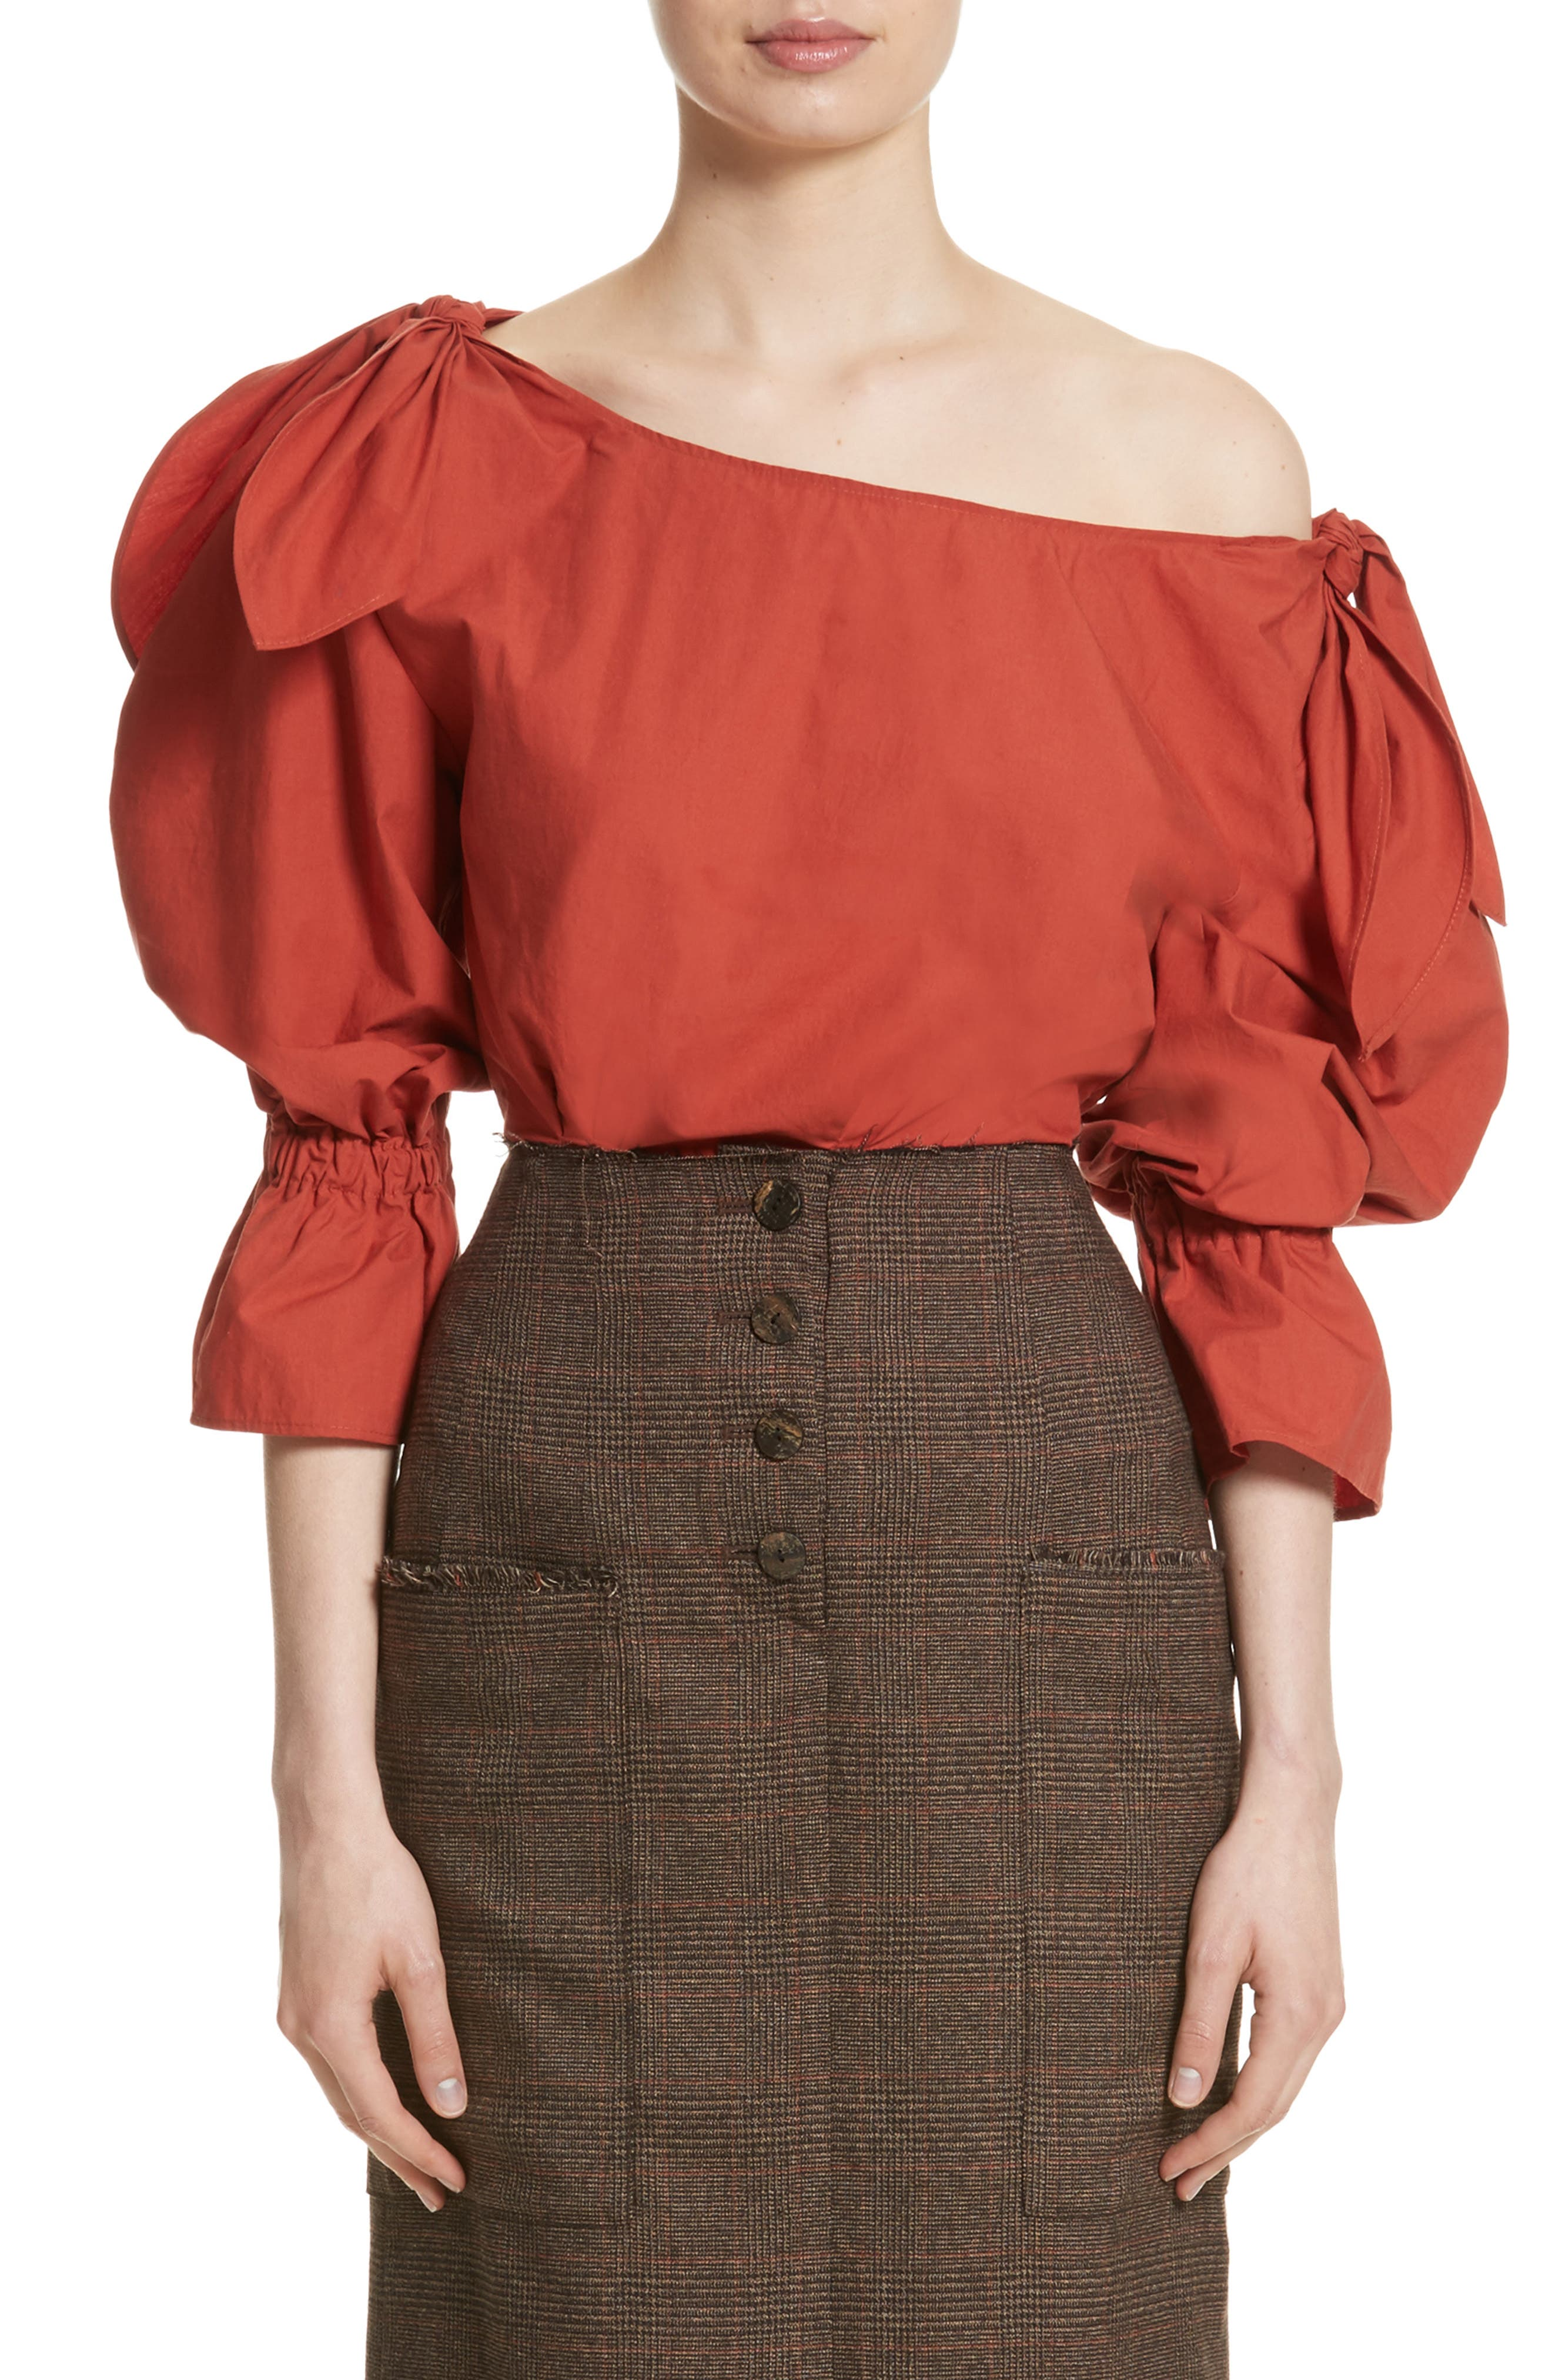 Michelle One-Shoulder Puff Sleeve Blouse,                             Main thumbnail 1, color,                             810